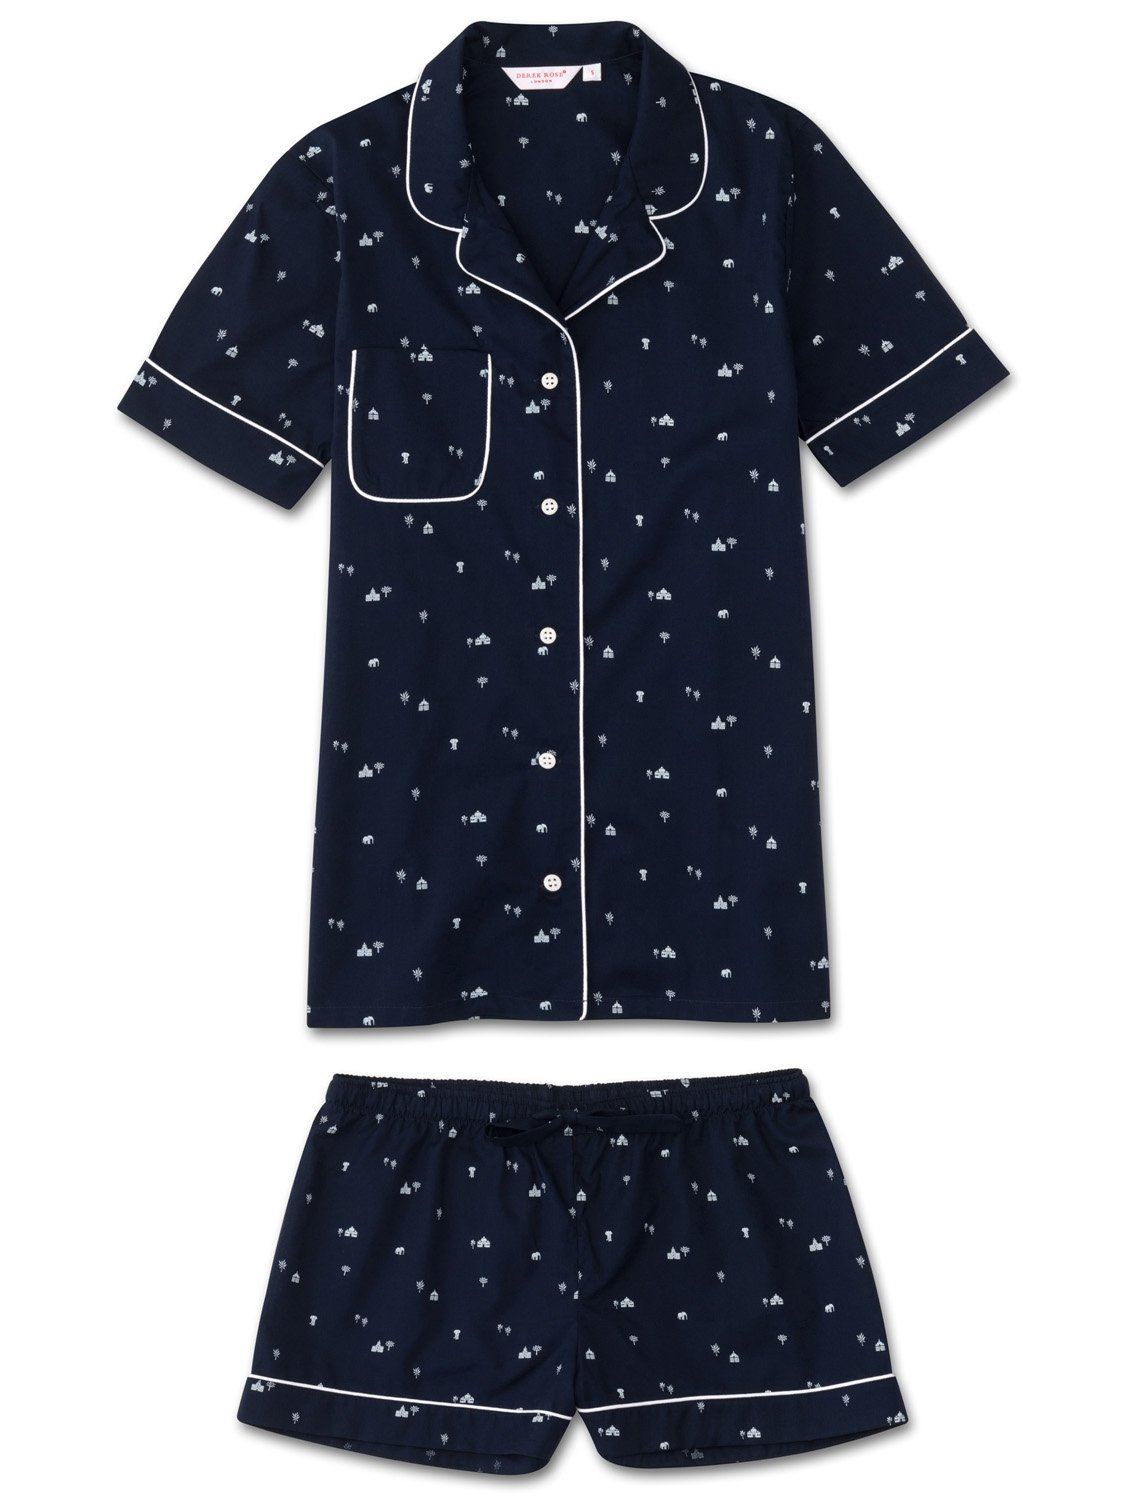 Women's Shortie Pyjamas Nelson 62 Cotton Batiste Navy